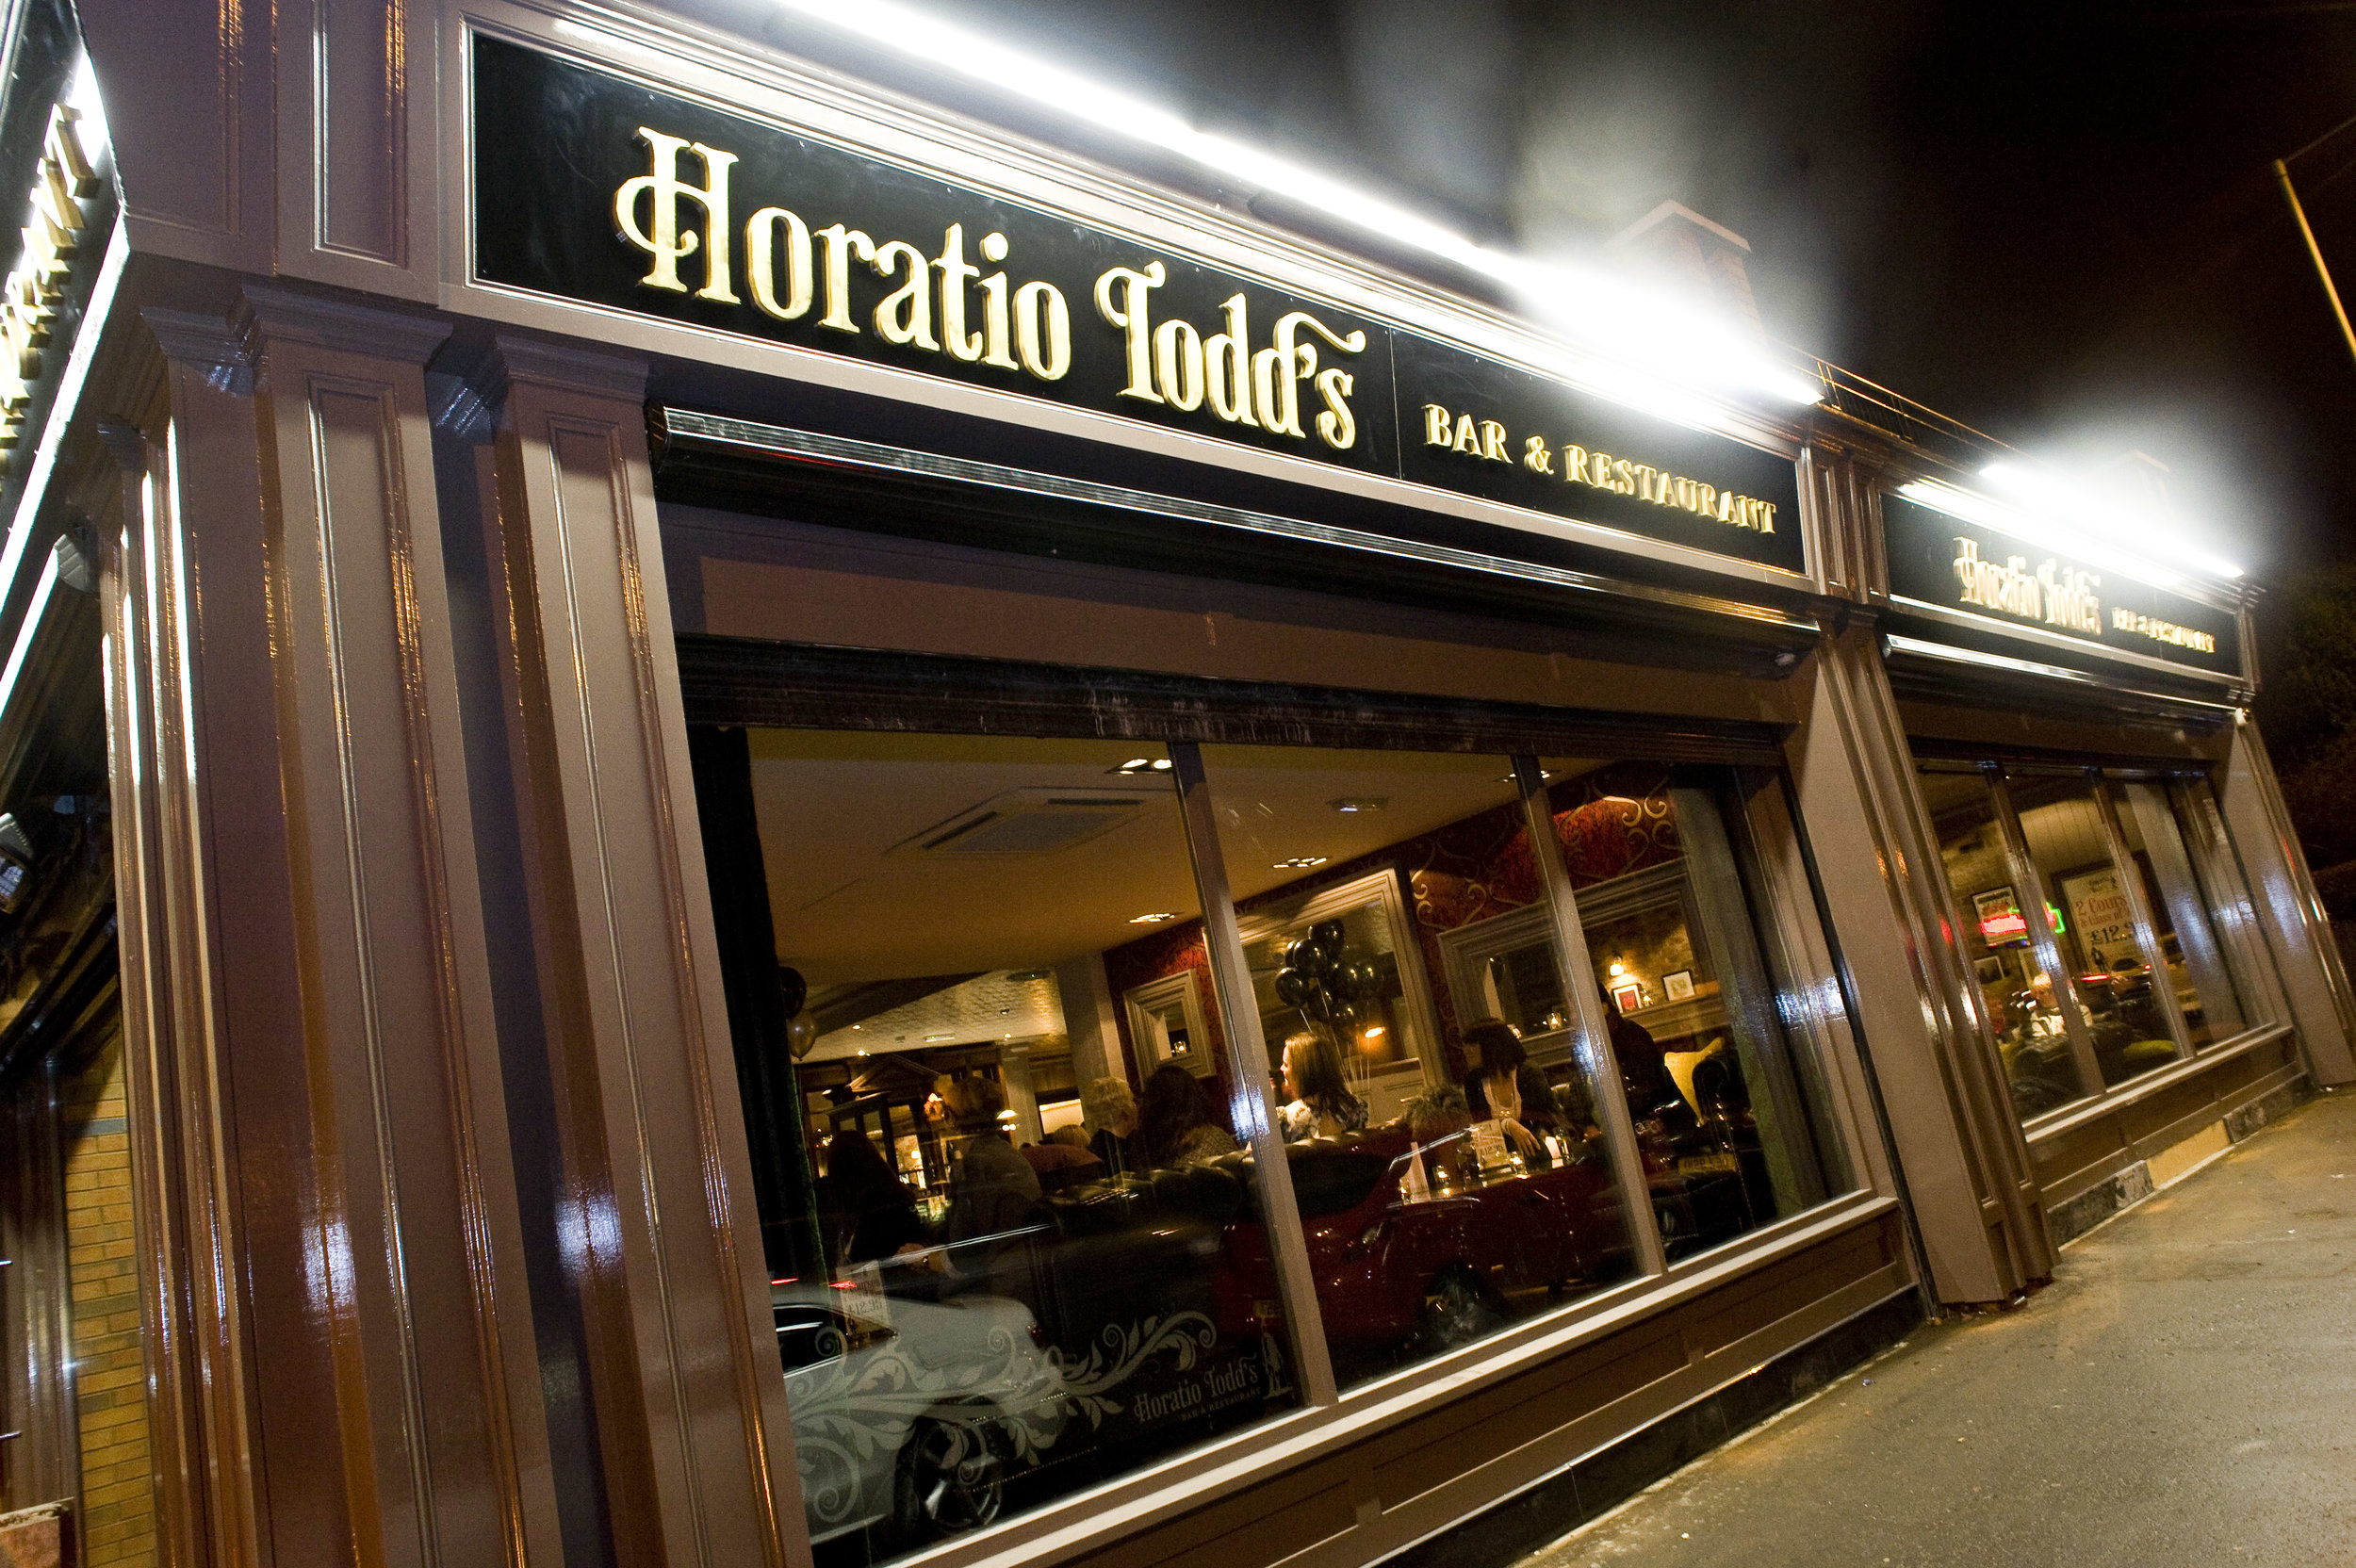 Horatio Todd's   - Currently are recruiting for Chef de Partie & Commis chef Positions